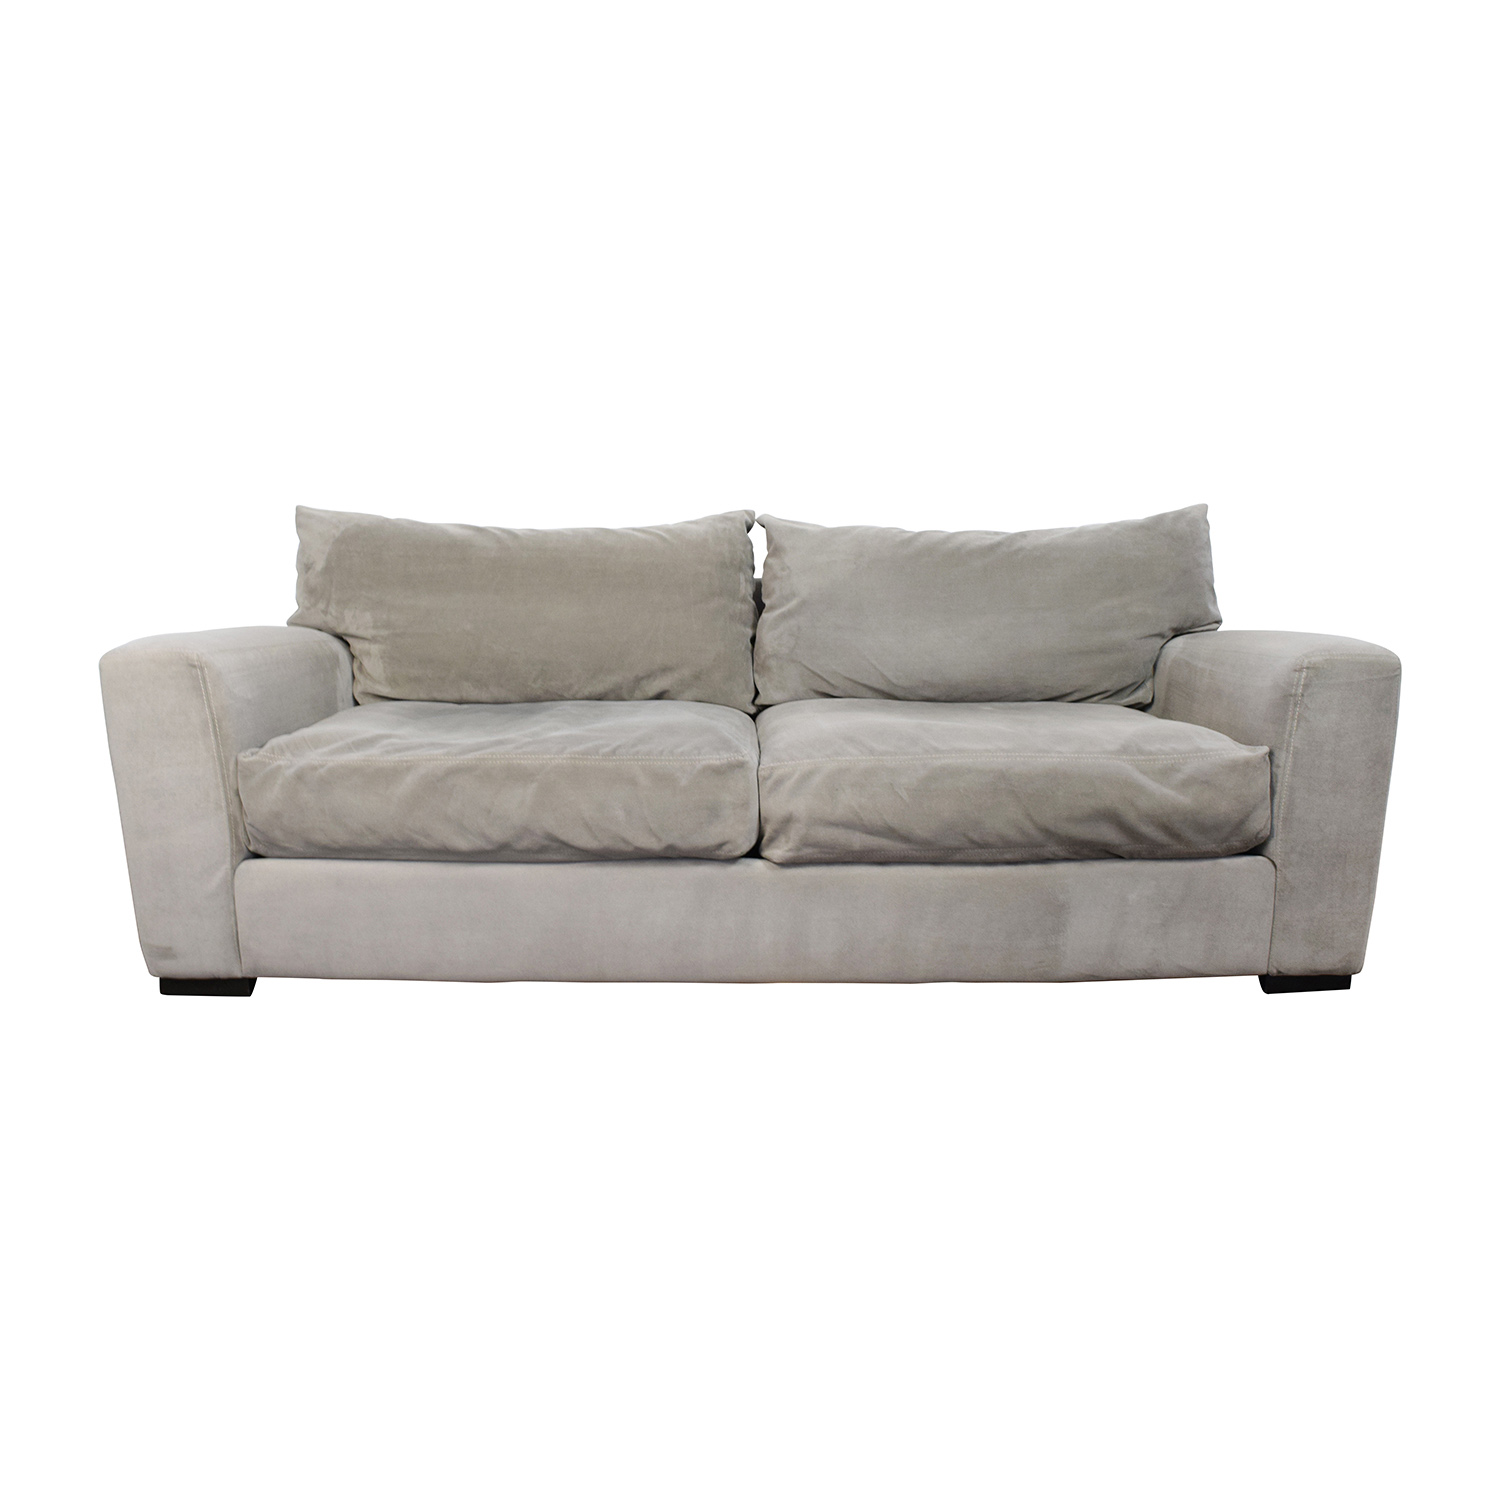 73% OFF - Raymour & Flanigan Raymour & Flanigan Carlin Grey Microfiber Sofa  / Sofas